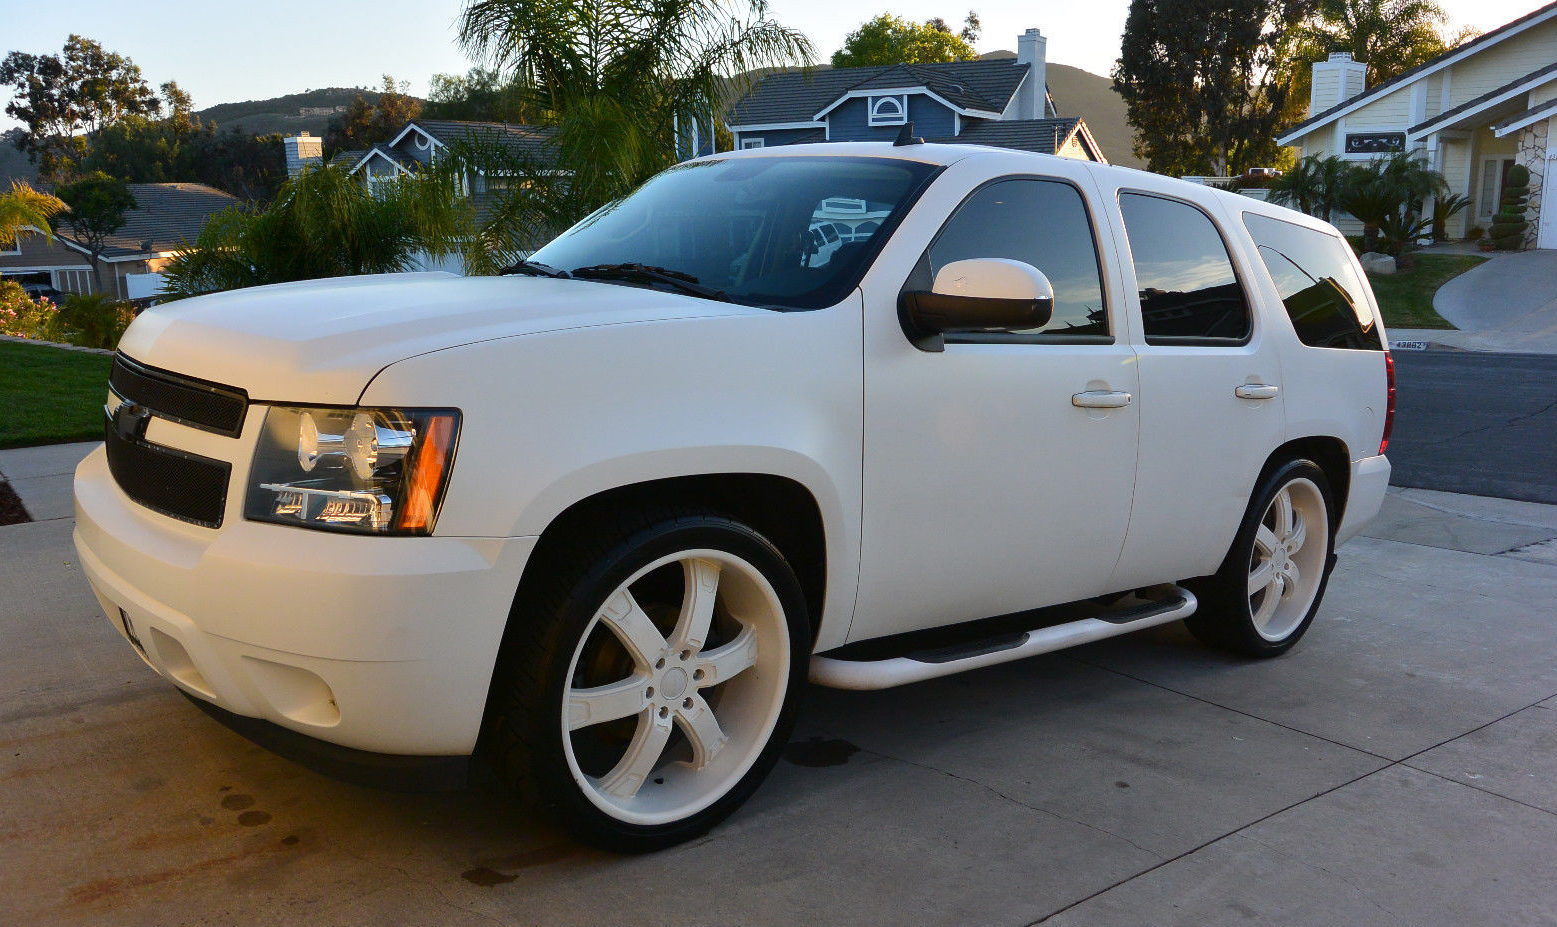 Rob dyrdek 39 s old chevrolet tahoe for sale on ebay Celebrity motors